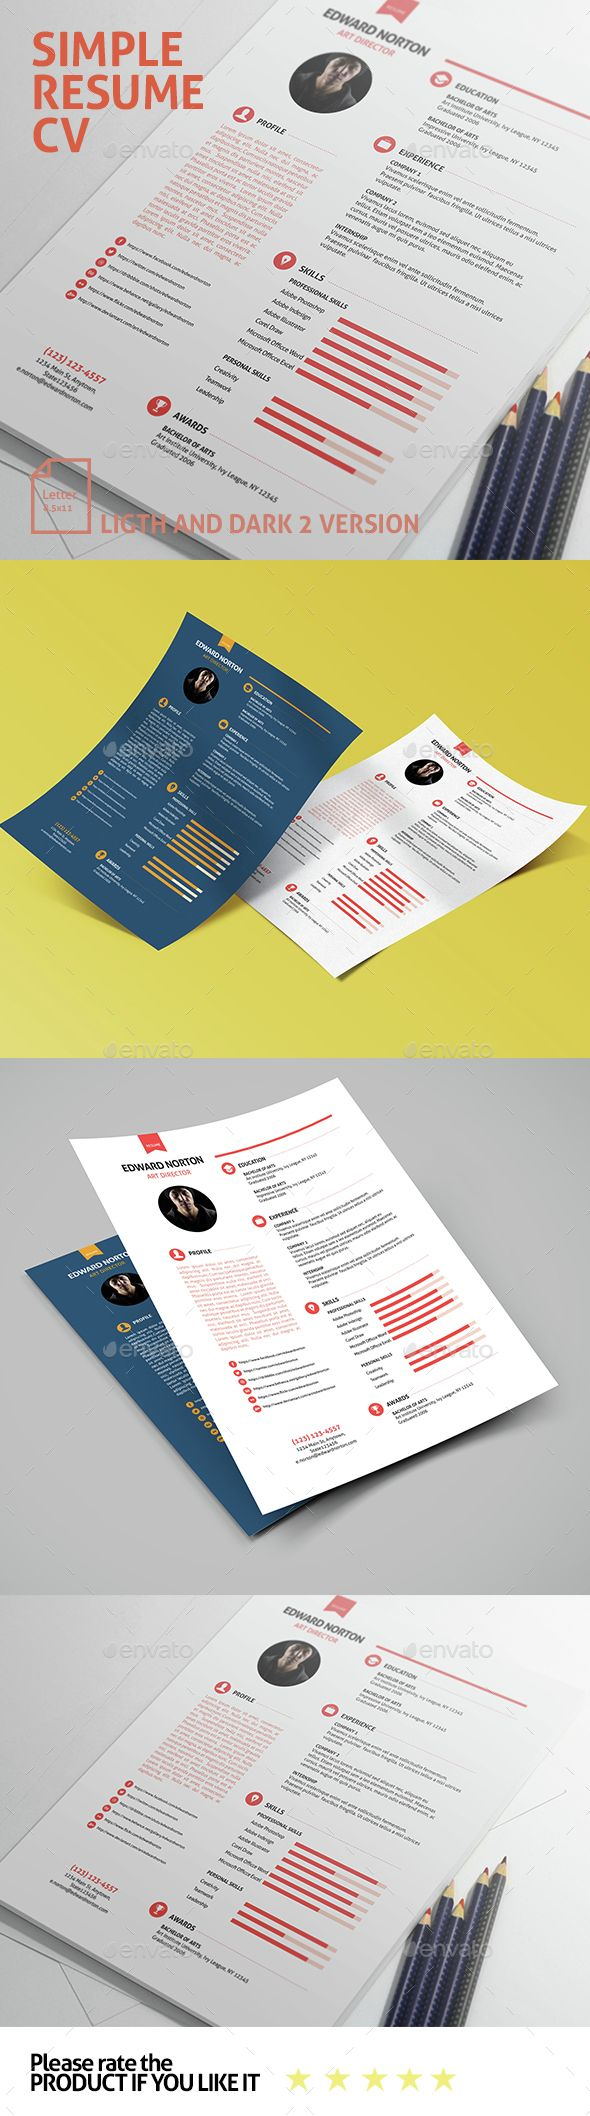 cashier resume format%0A ideas about Simple Resume Examples on Pinterest Simple